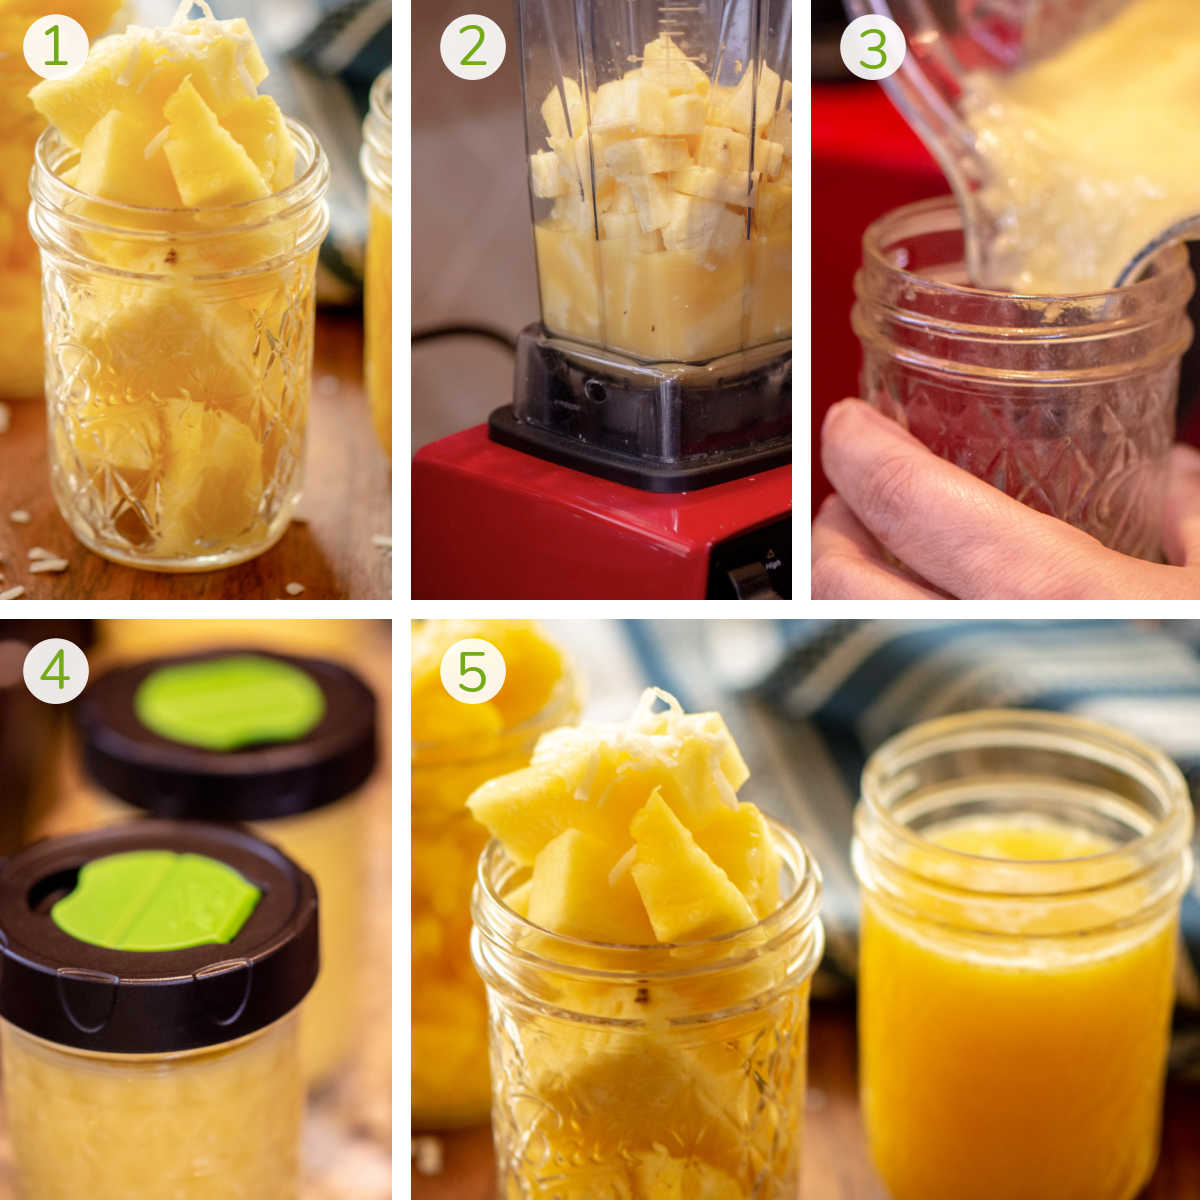 process photos showing cutting the fruit, blending it, pouring it in a freezer safe jar and serving.